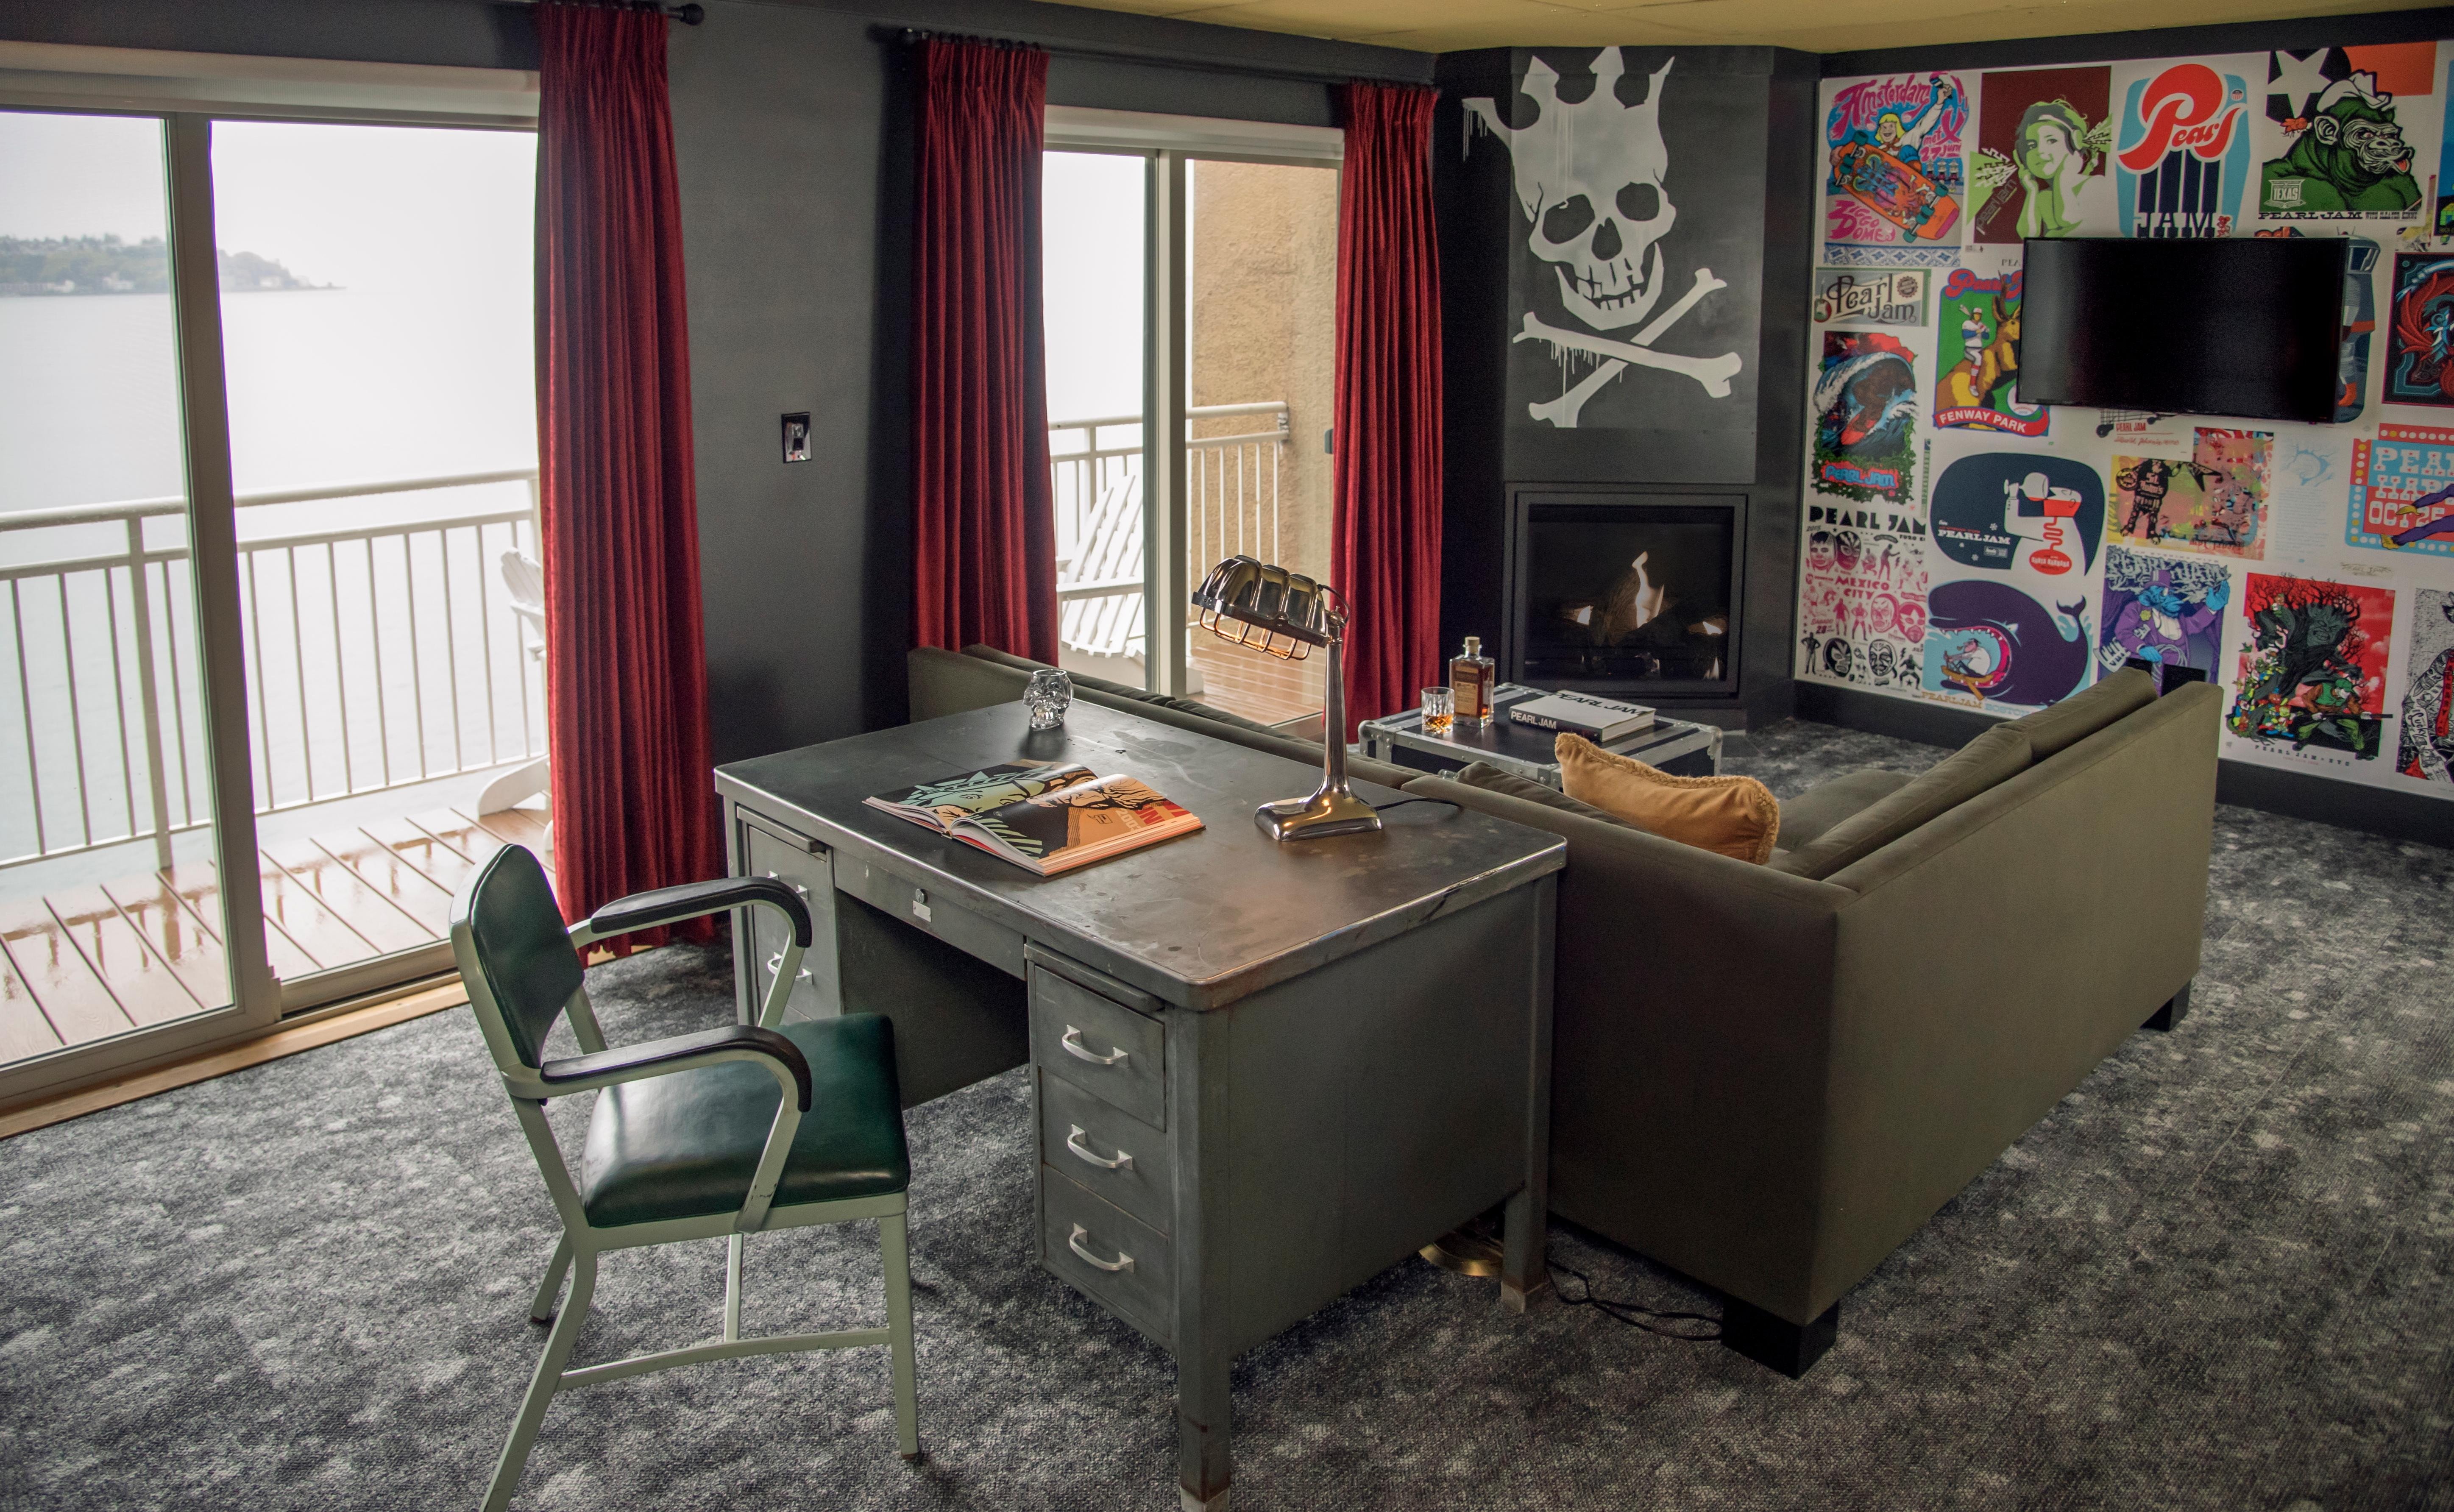 Pearl Jam Suite. In 2018 The Edgewater debuted the Pearl Jam Suite designed by local Seattle firm Mallet Architecture & Design and serves as yet another nod to the hotel's rich music history. Historic tour posters adorn the space, as well as a vintage Oriental rug, L-shaped couch, floor lamps activated by a guitar pedal, and a new custom bed, among other unique décor. Guests can indulge in the ultimate rock 'n' roll experience in the Pearl Jam Suite, which includes large wall graphics of Pearl Jam fans, a Pearl Jam curated library of books, vinyl turn table and cassette players, guitar and fender amps for guest check-out, street art of Pearl Jam-related iconography adorned on the walls and furniture, set-lists from past shows, a state of the art sound system, and much more. (Image courtesy of Edgewater Hotel)